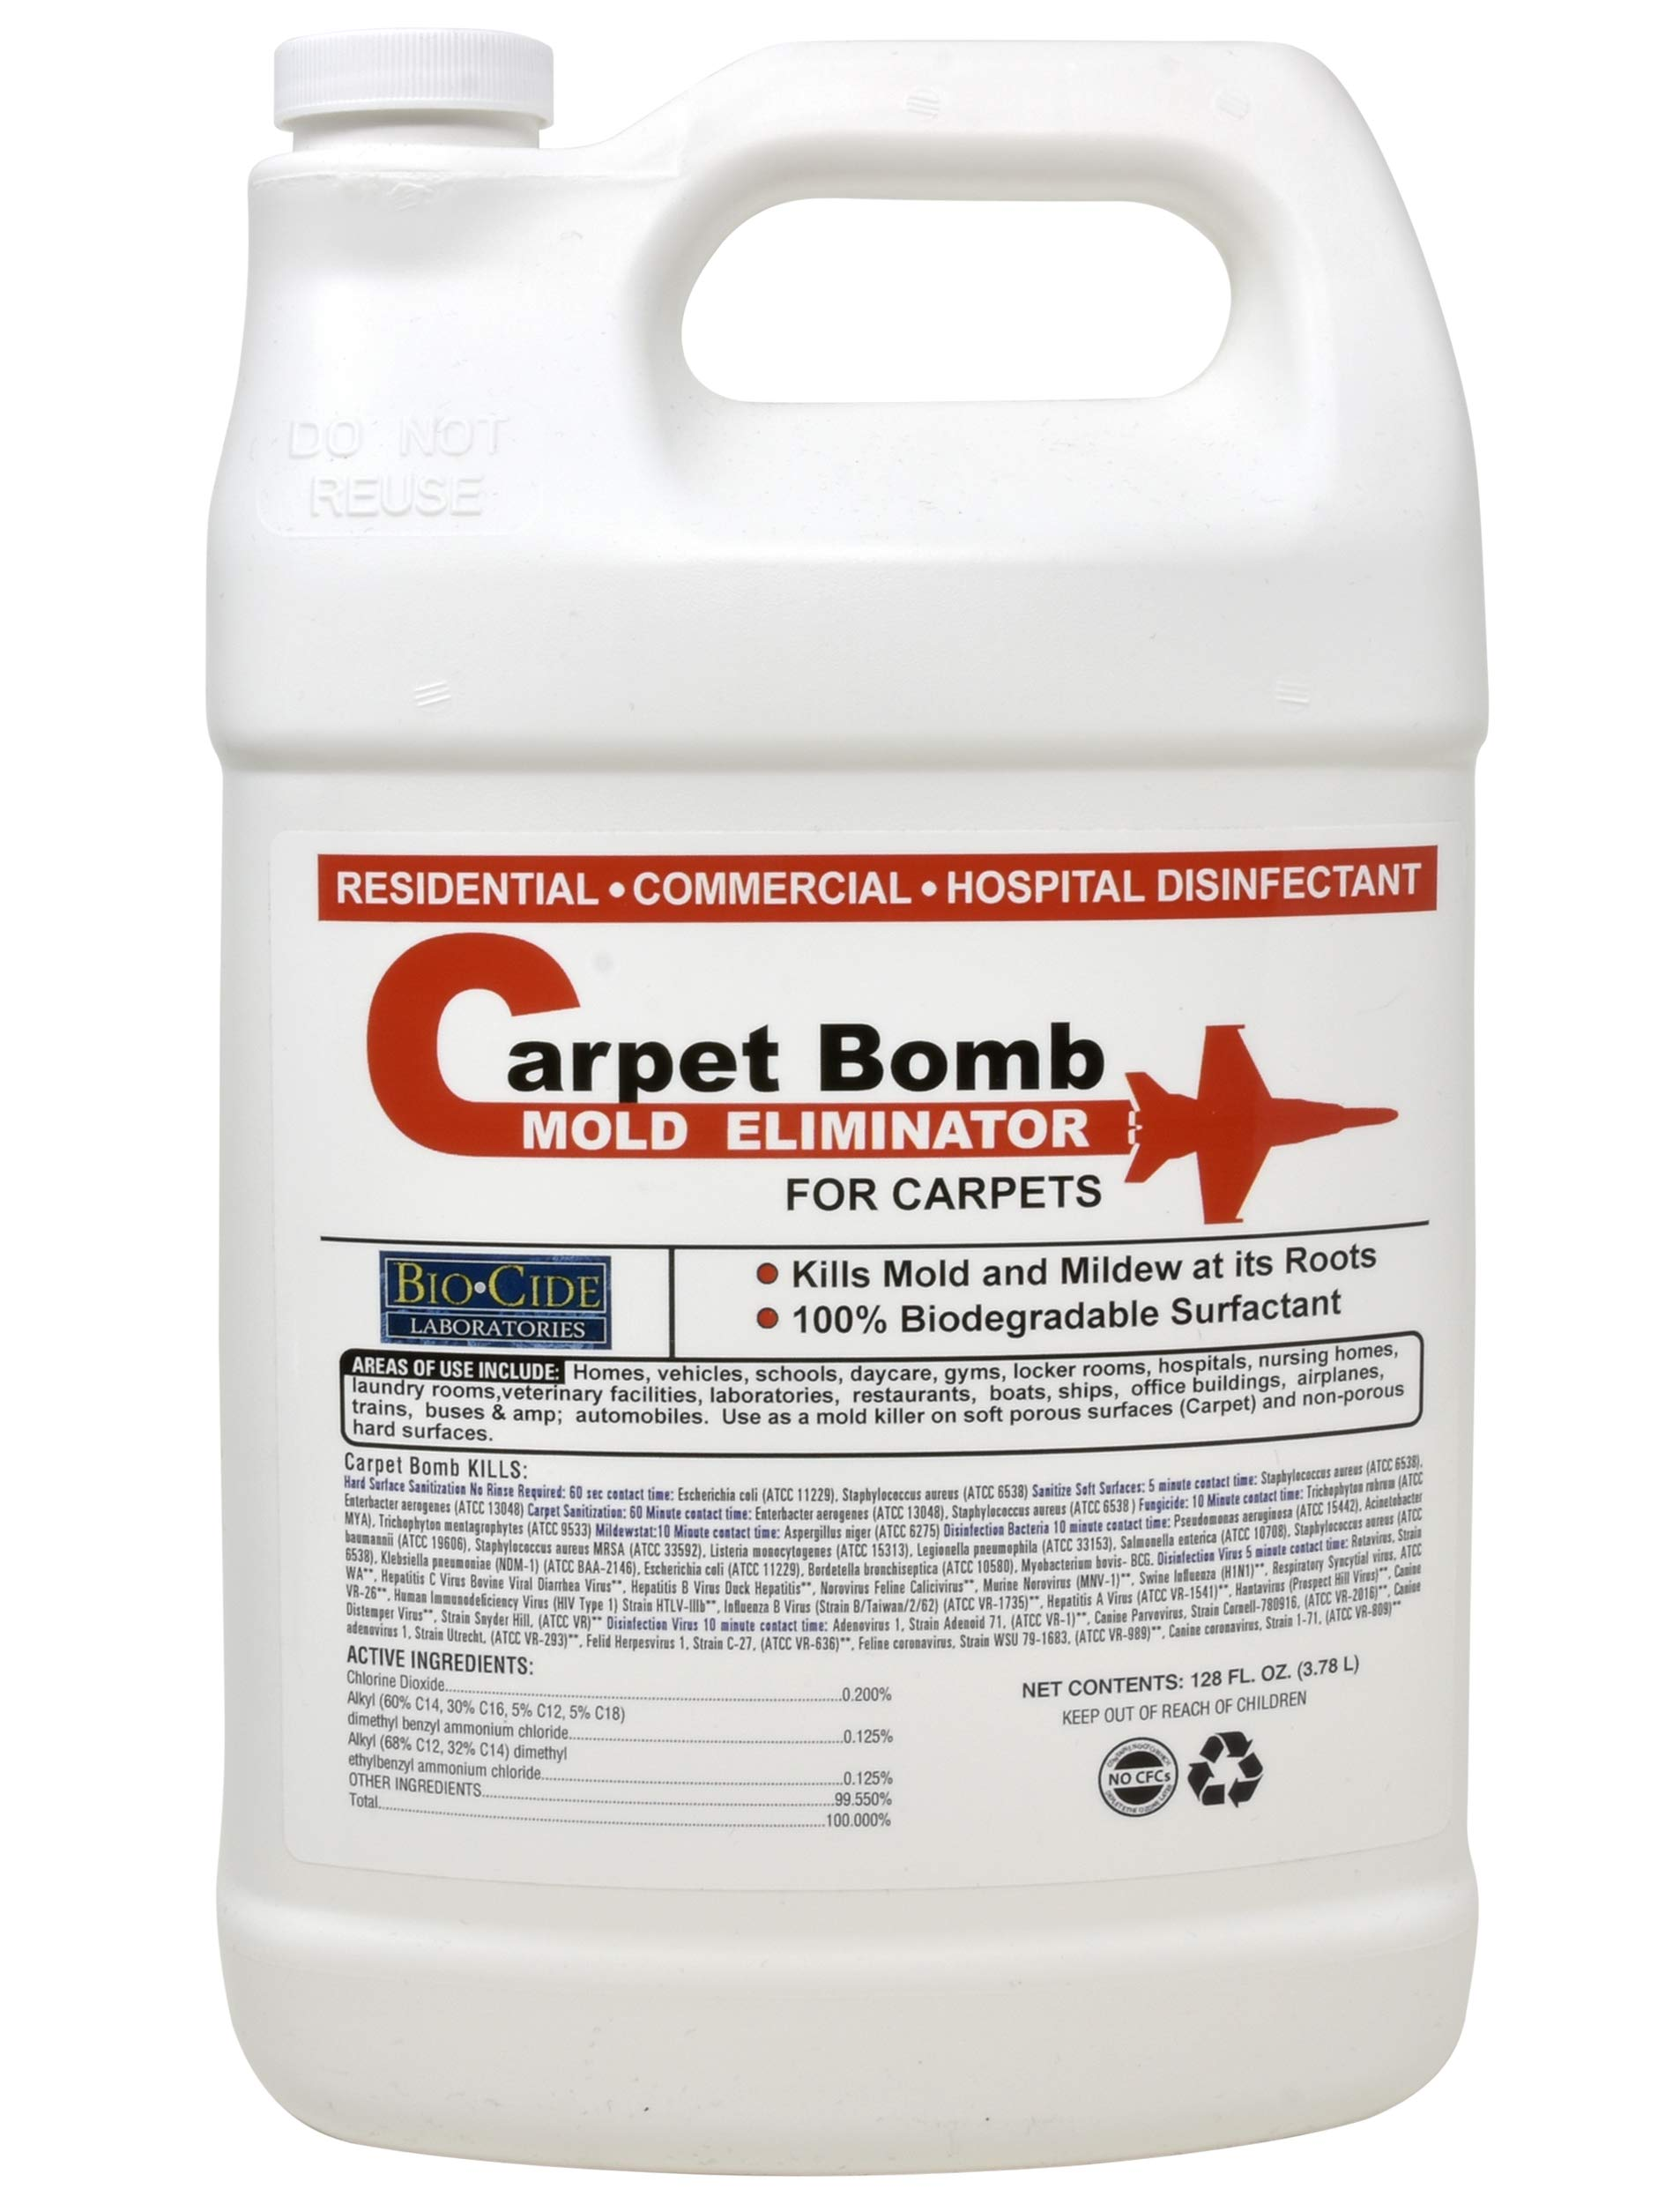 Biocide Carpet Mold Cleaner, Deep Stain and Odor Remover Solution, Mold Killer, Fogger, Deep Cleaner for all Surfaces, Fiber Materials, Rugs, Upholstery Fabric, Compatible with all Carpet Cleaners by Biocide Laboratories